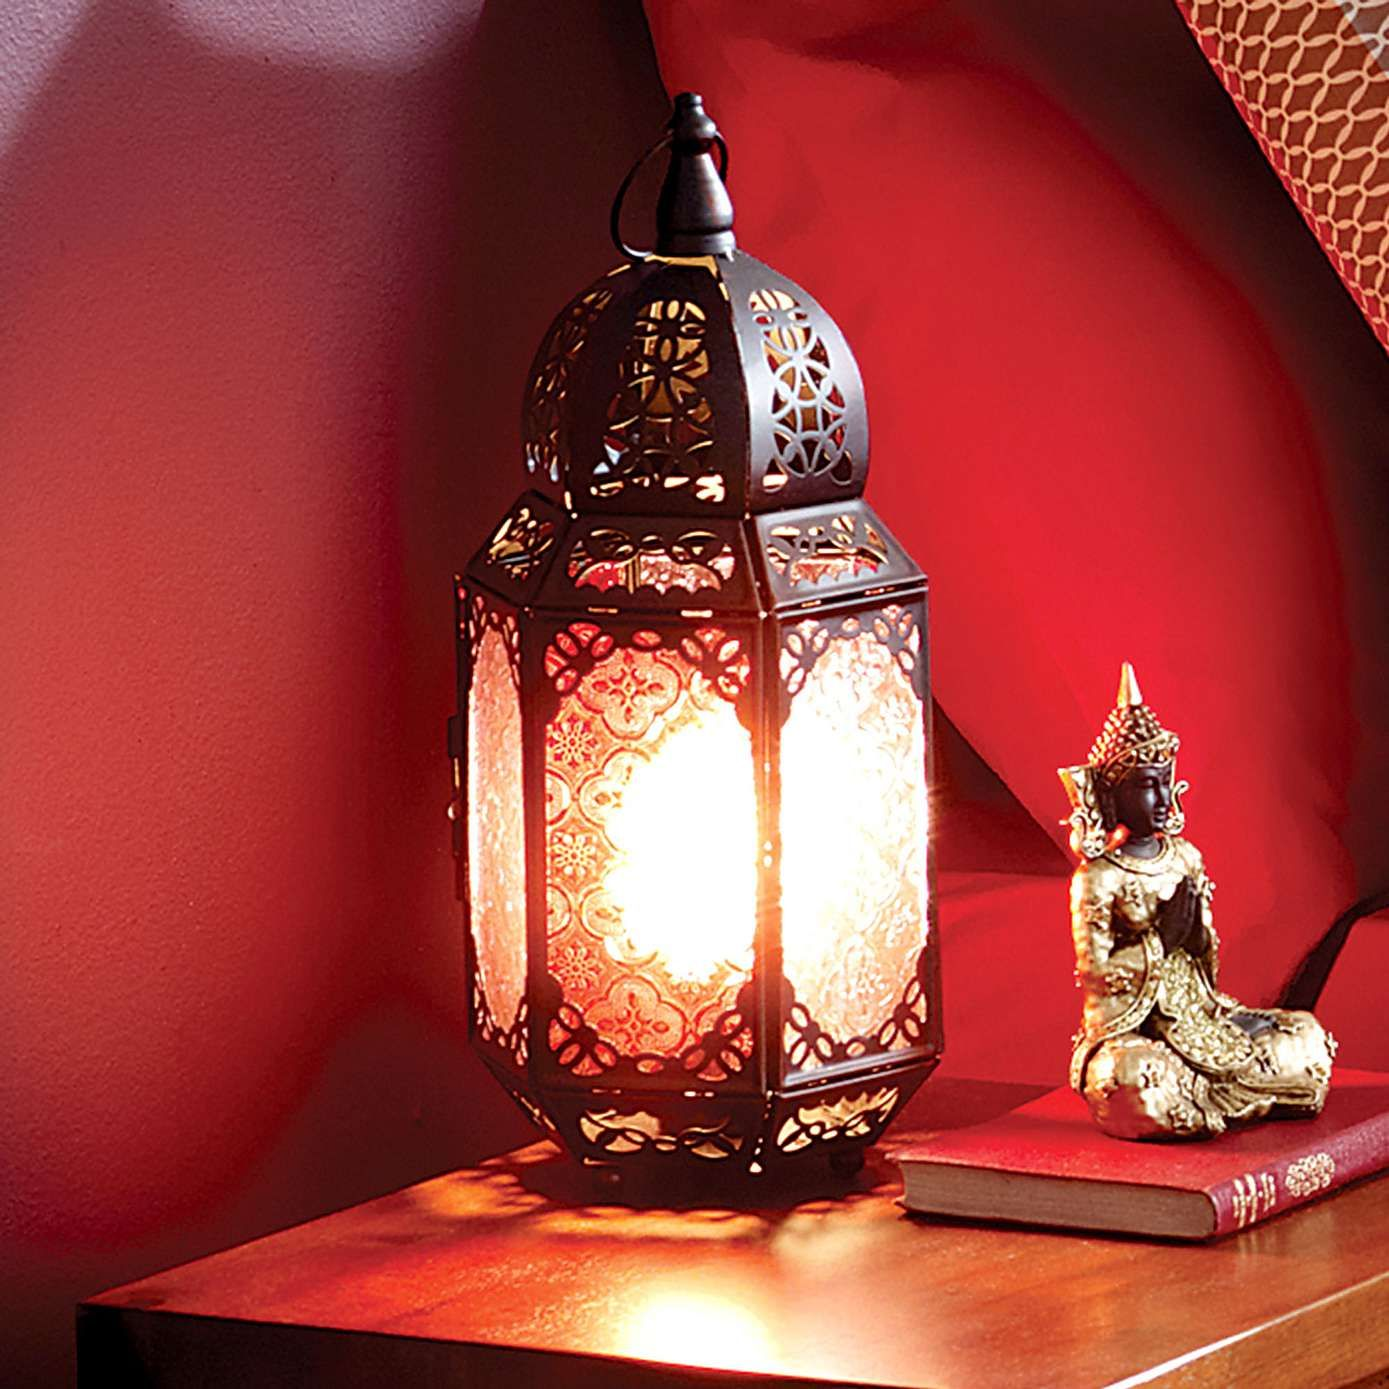 Bathroom Lights Dunelm marrakech lantern table lamp | decorating, bedrooms and room